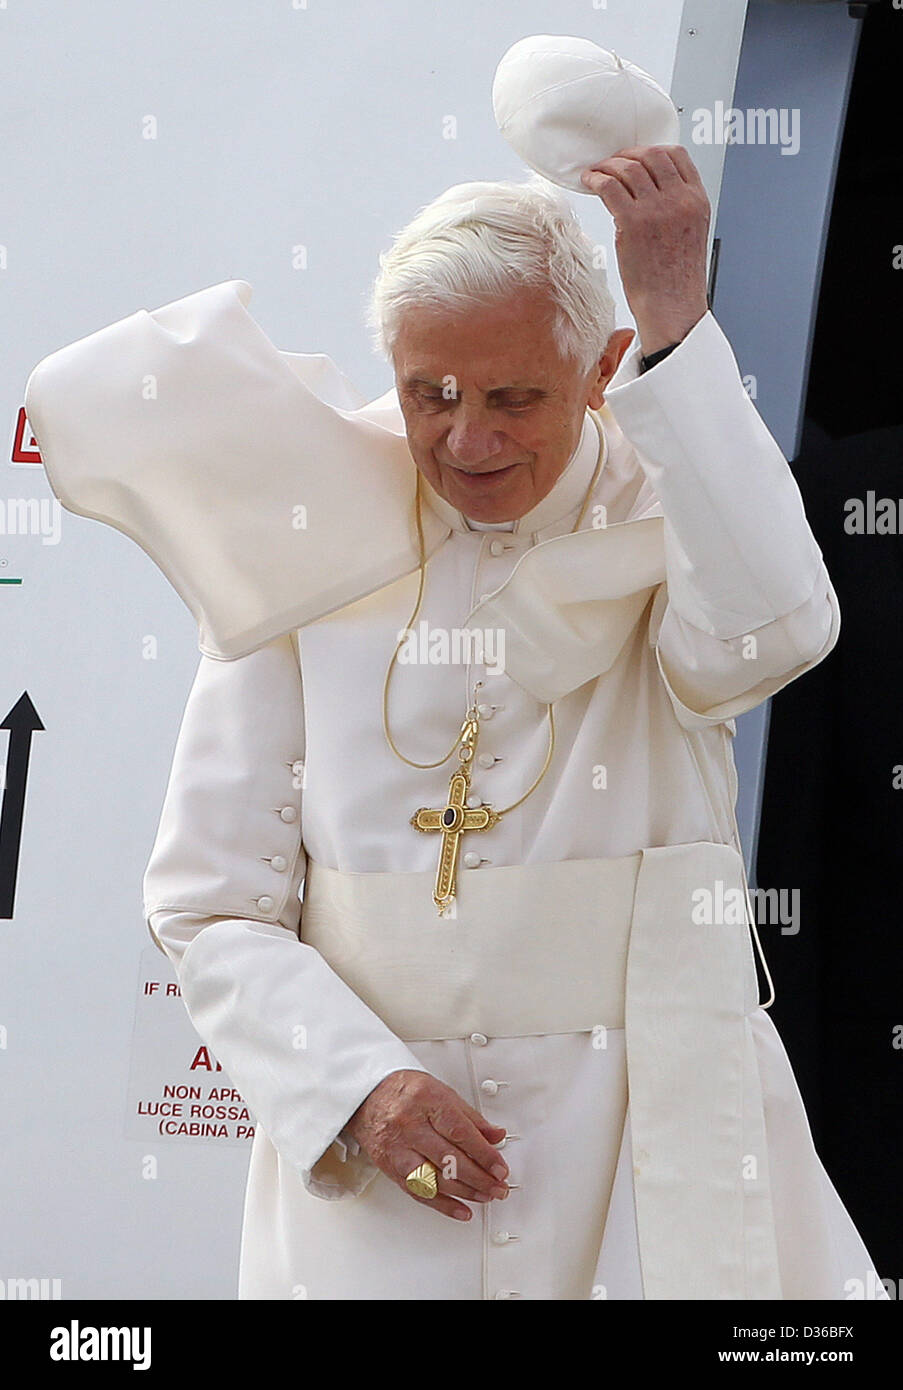 Pope Benedict XVI arrives at Tegel airport in Berlin, Germany, 22 September 2011. The head of the Roman Catholic - Stock Image